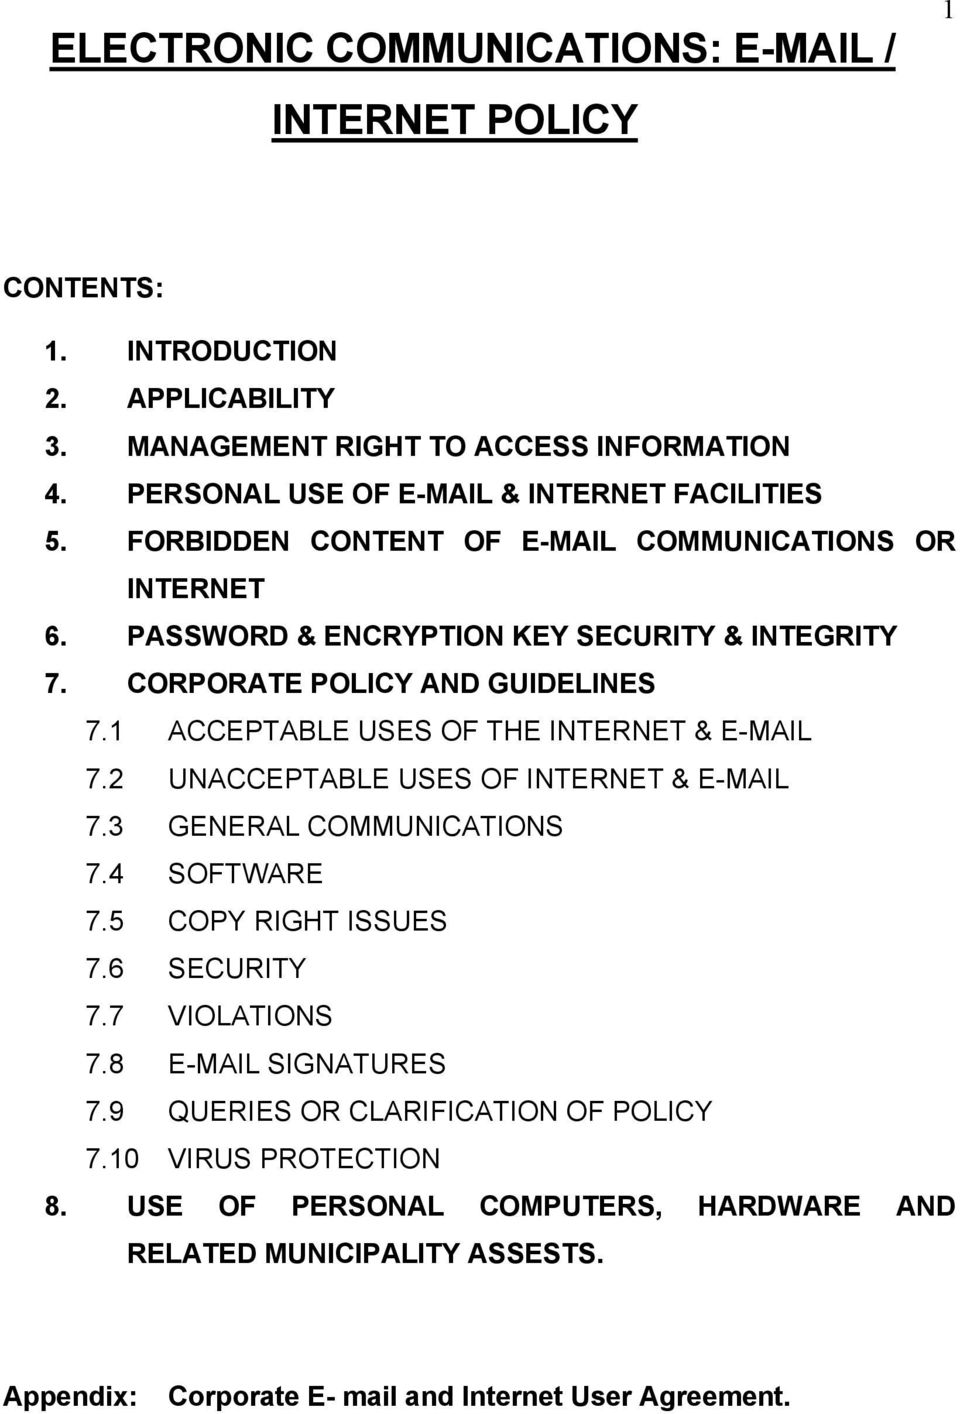 CORPORATE POLICY AND GUIDELINES 7.1 ACCEPTABLE USES OF THE INTERNET & E-MAIL 7.2 UNACCEPTABLE USES OF INTERNET & E-MAIL 7.3 GENERAL COMMUNICATIONS 7.4 SOFTWARE 7.